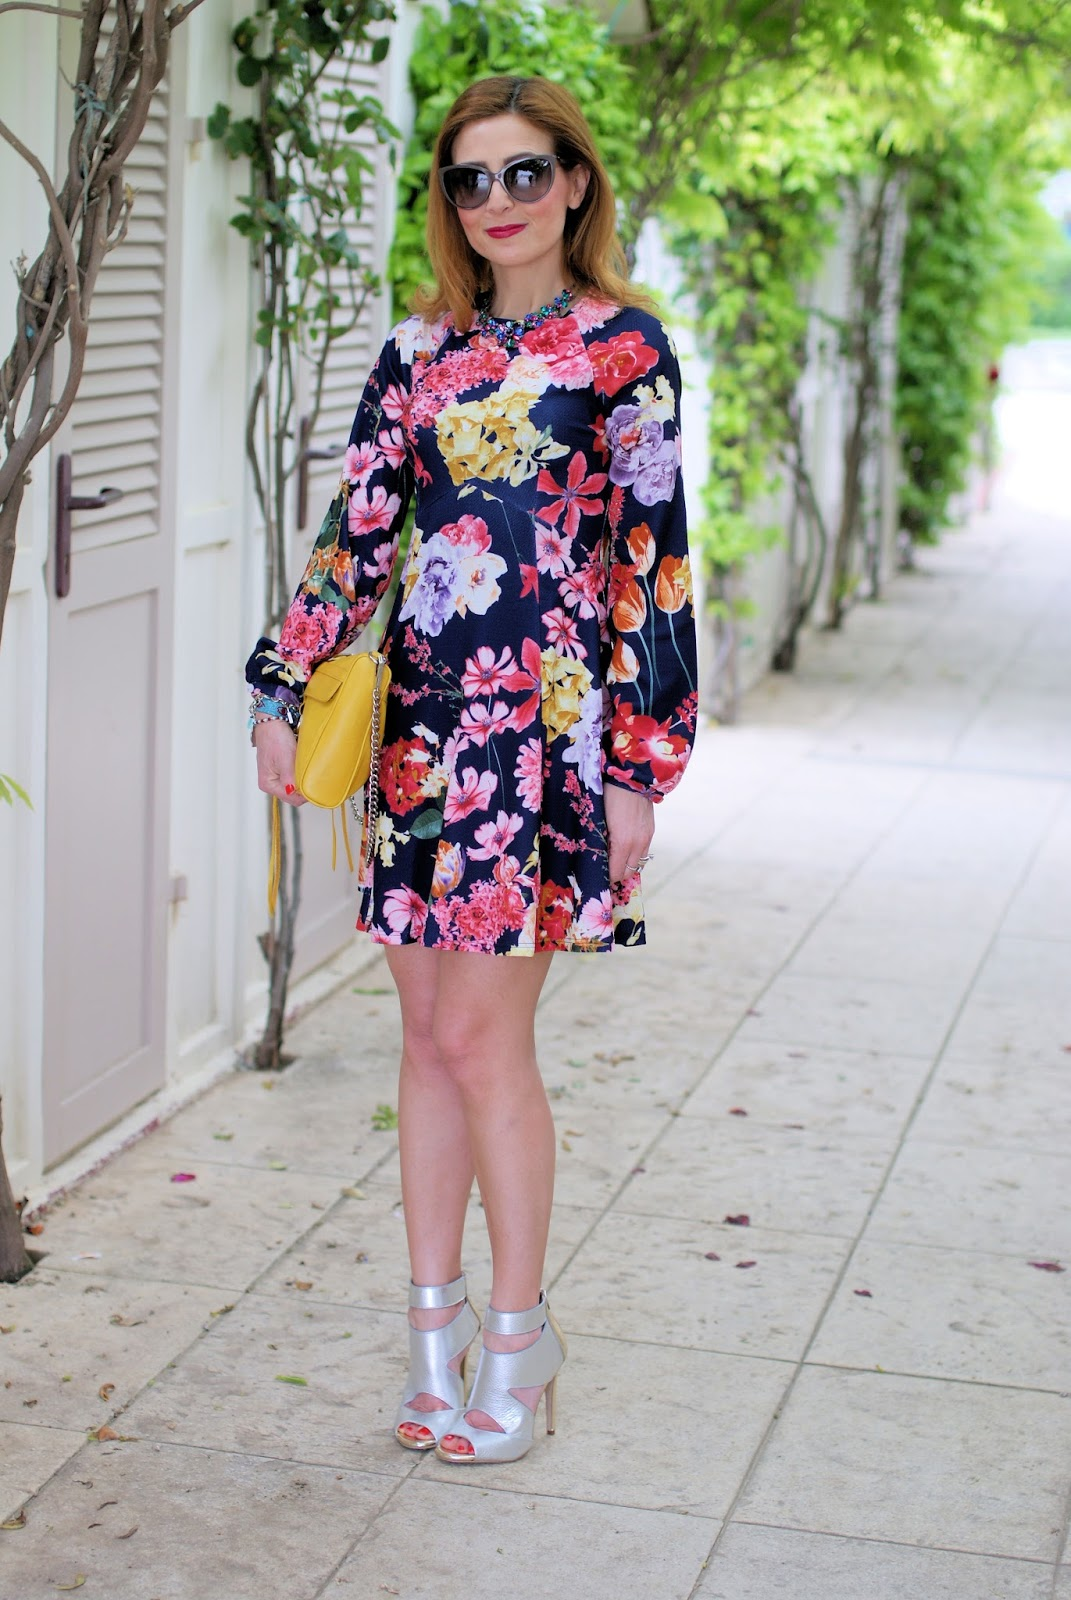 ow to wear metallic heels with Lorenzo Mari silver caged sandals and asos floral dress on Fashion and Cookies fashion blog, fashion blogger style